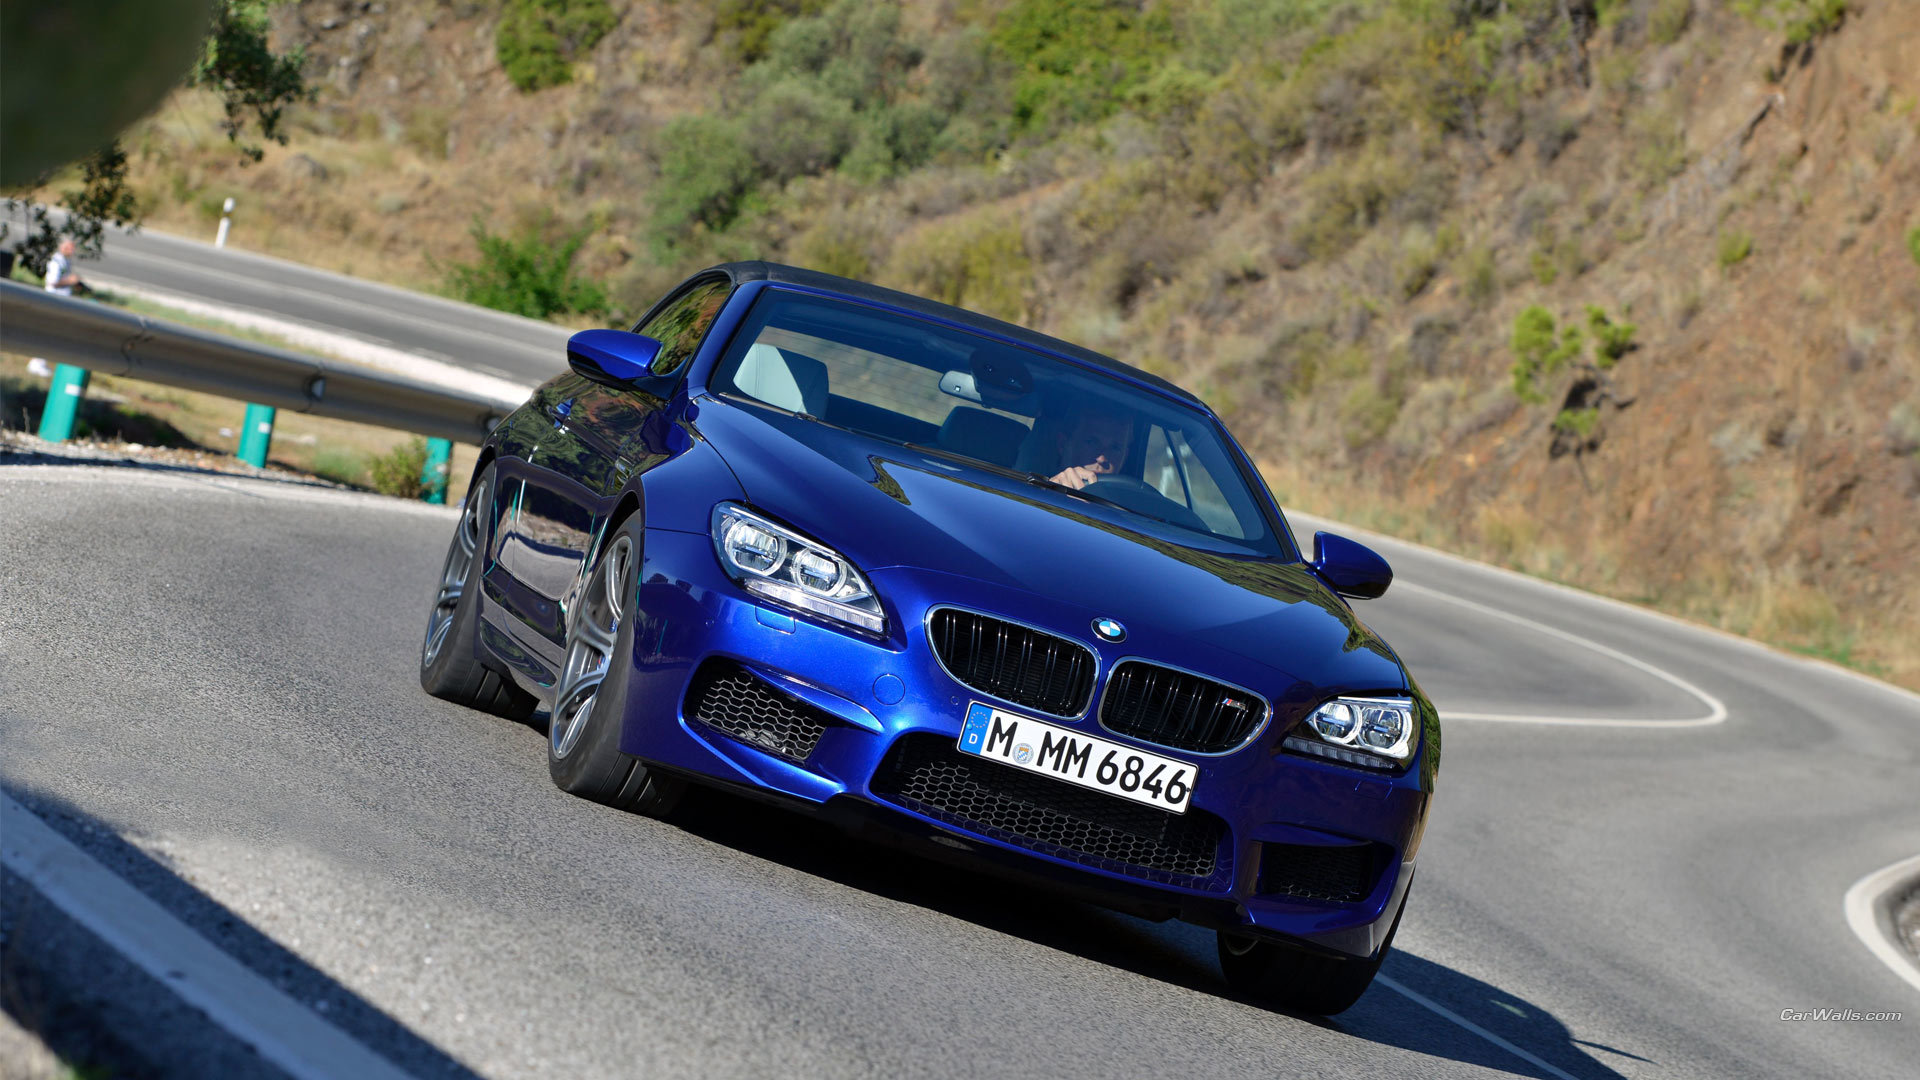 High resolution BMW M6 hd 1080p wallpaper ID:27379 for computer